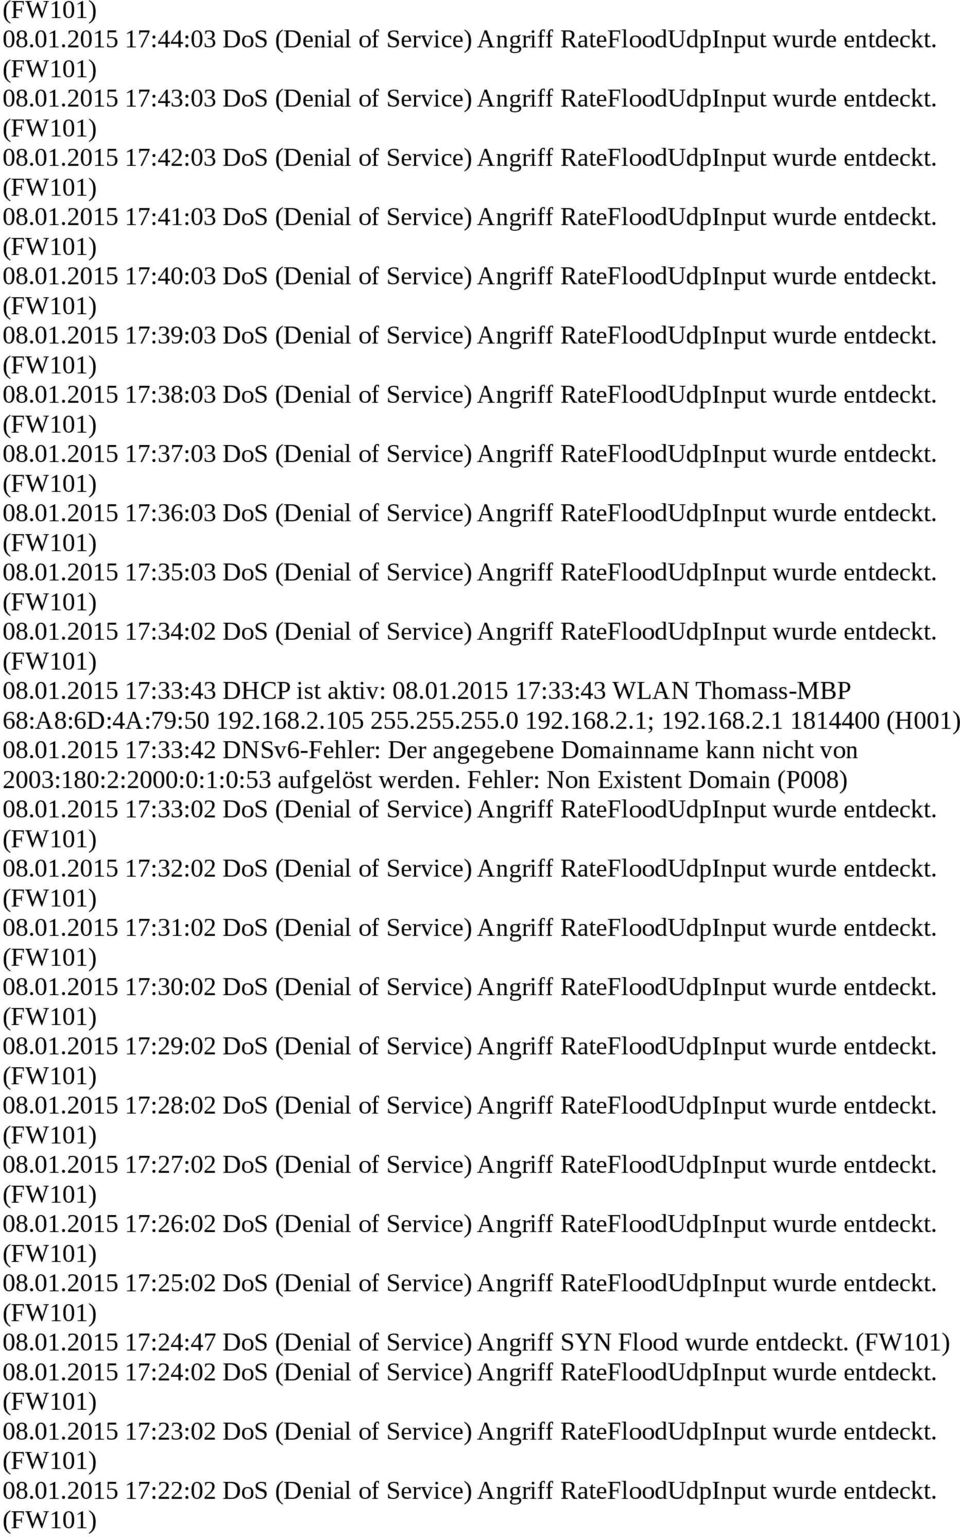 08.01.2015 17:38:03 DoS (Denial of Service) Angriff RateFloodUdpInput wurde entdeckt. 08.01.2015 17:37:03 DoS (Denial of Service) Angriff RateFloodUdpInput wurde entdeckt. 08.01.2015 17:36:03 DoS (Denial of Service) Angriff RateFloodUdpInput wurde entdeckt.